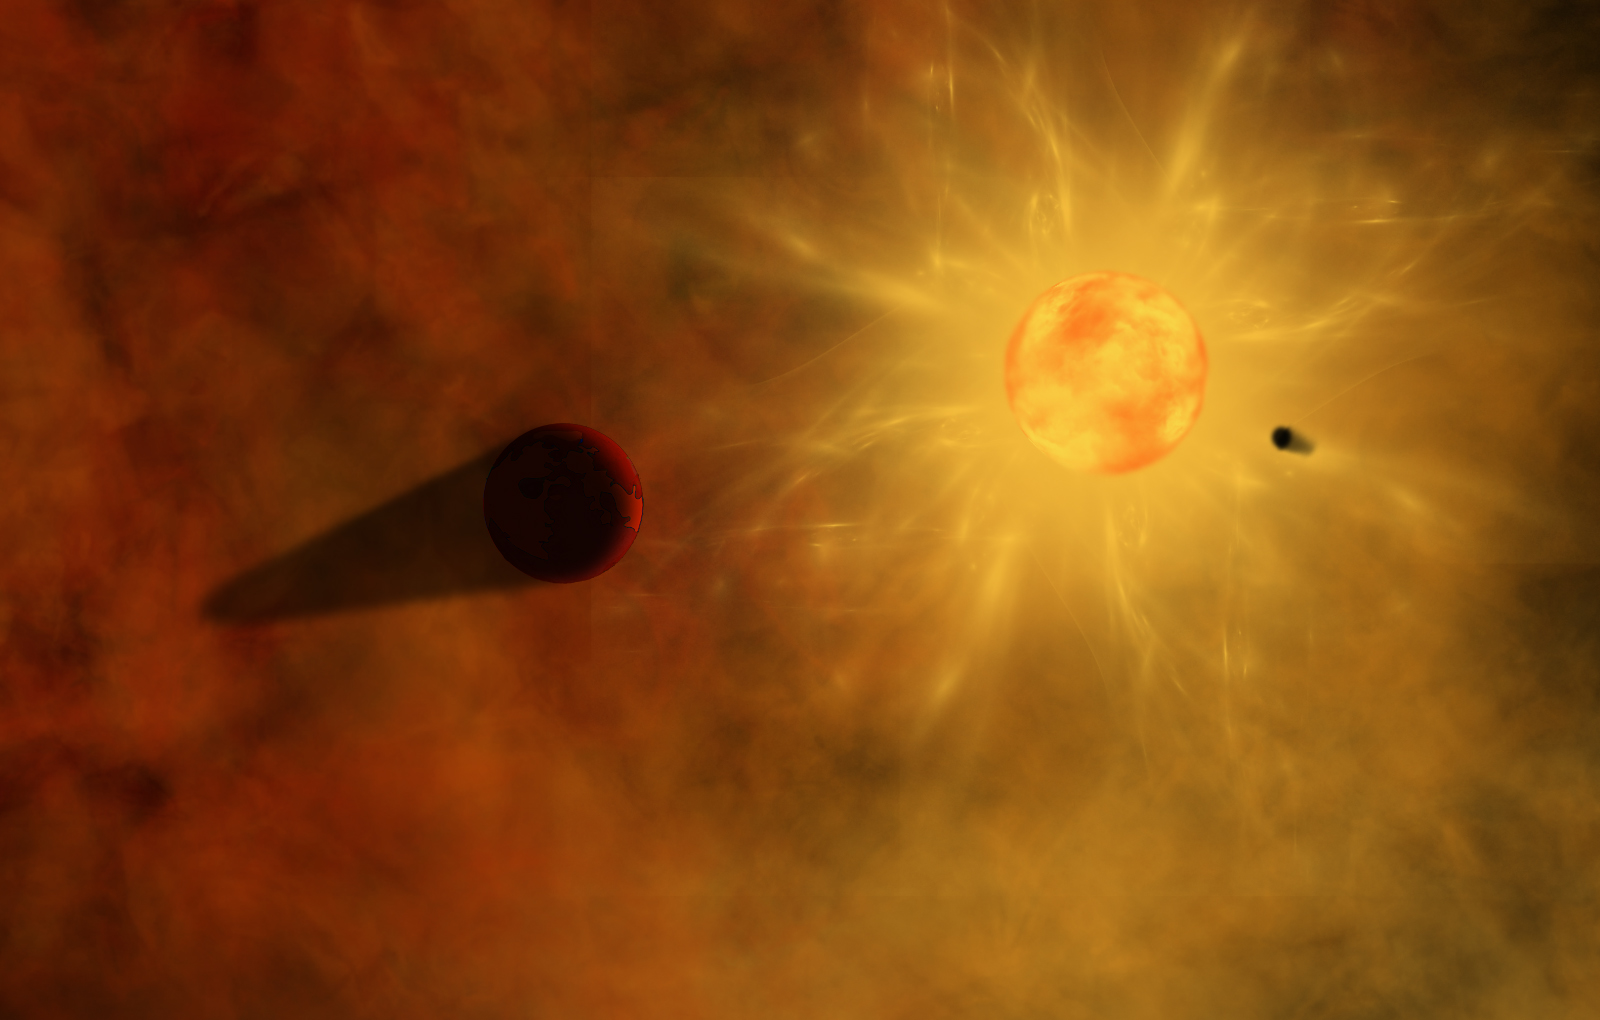 planetary system formation - photo #26